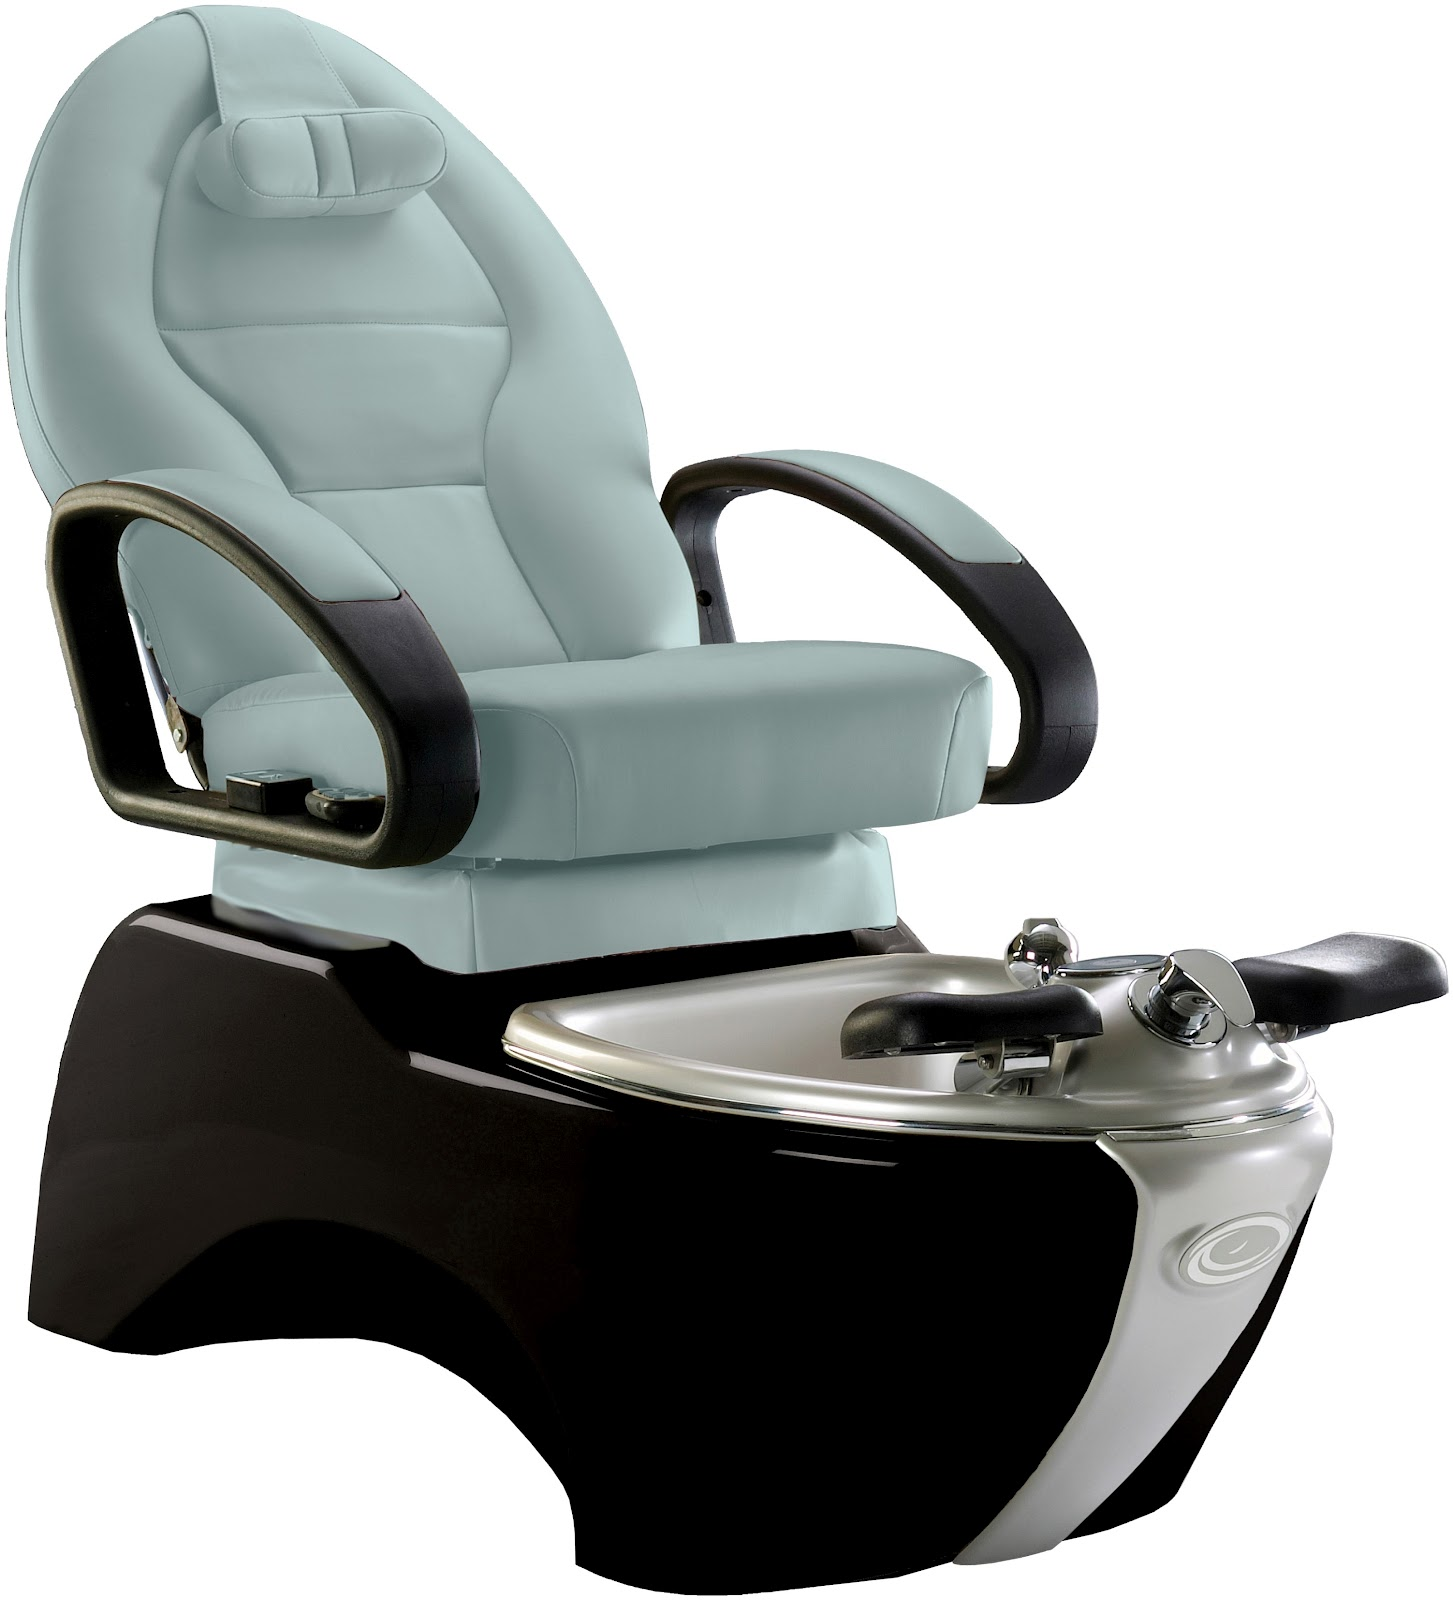 how much does a pedicure chair cost tall director with side table purchase stylish salon furniture to make your more attractive beauty industries you will need find some spa chairs for sale however it can be difficult the right at prices